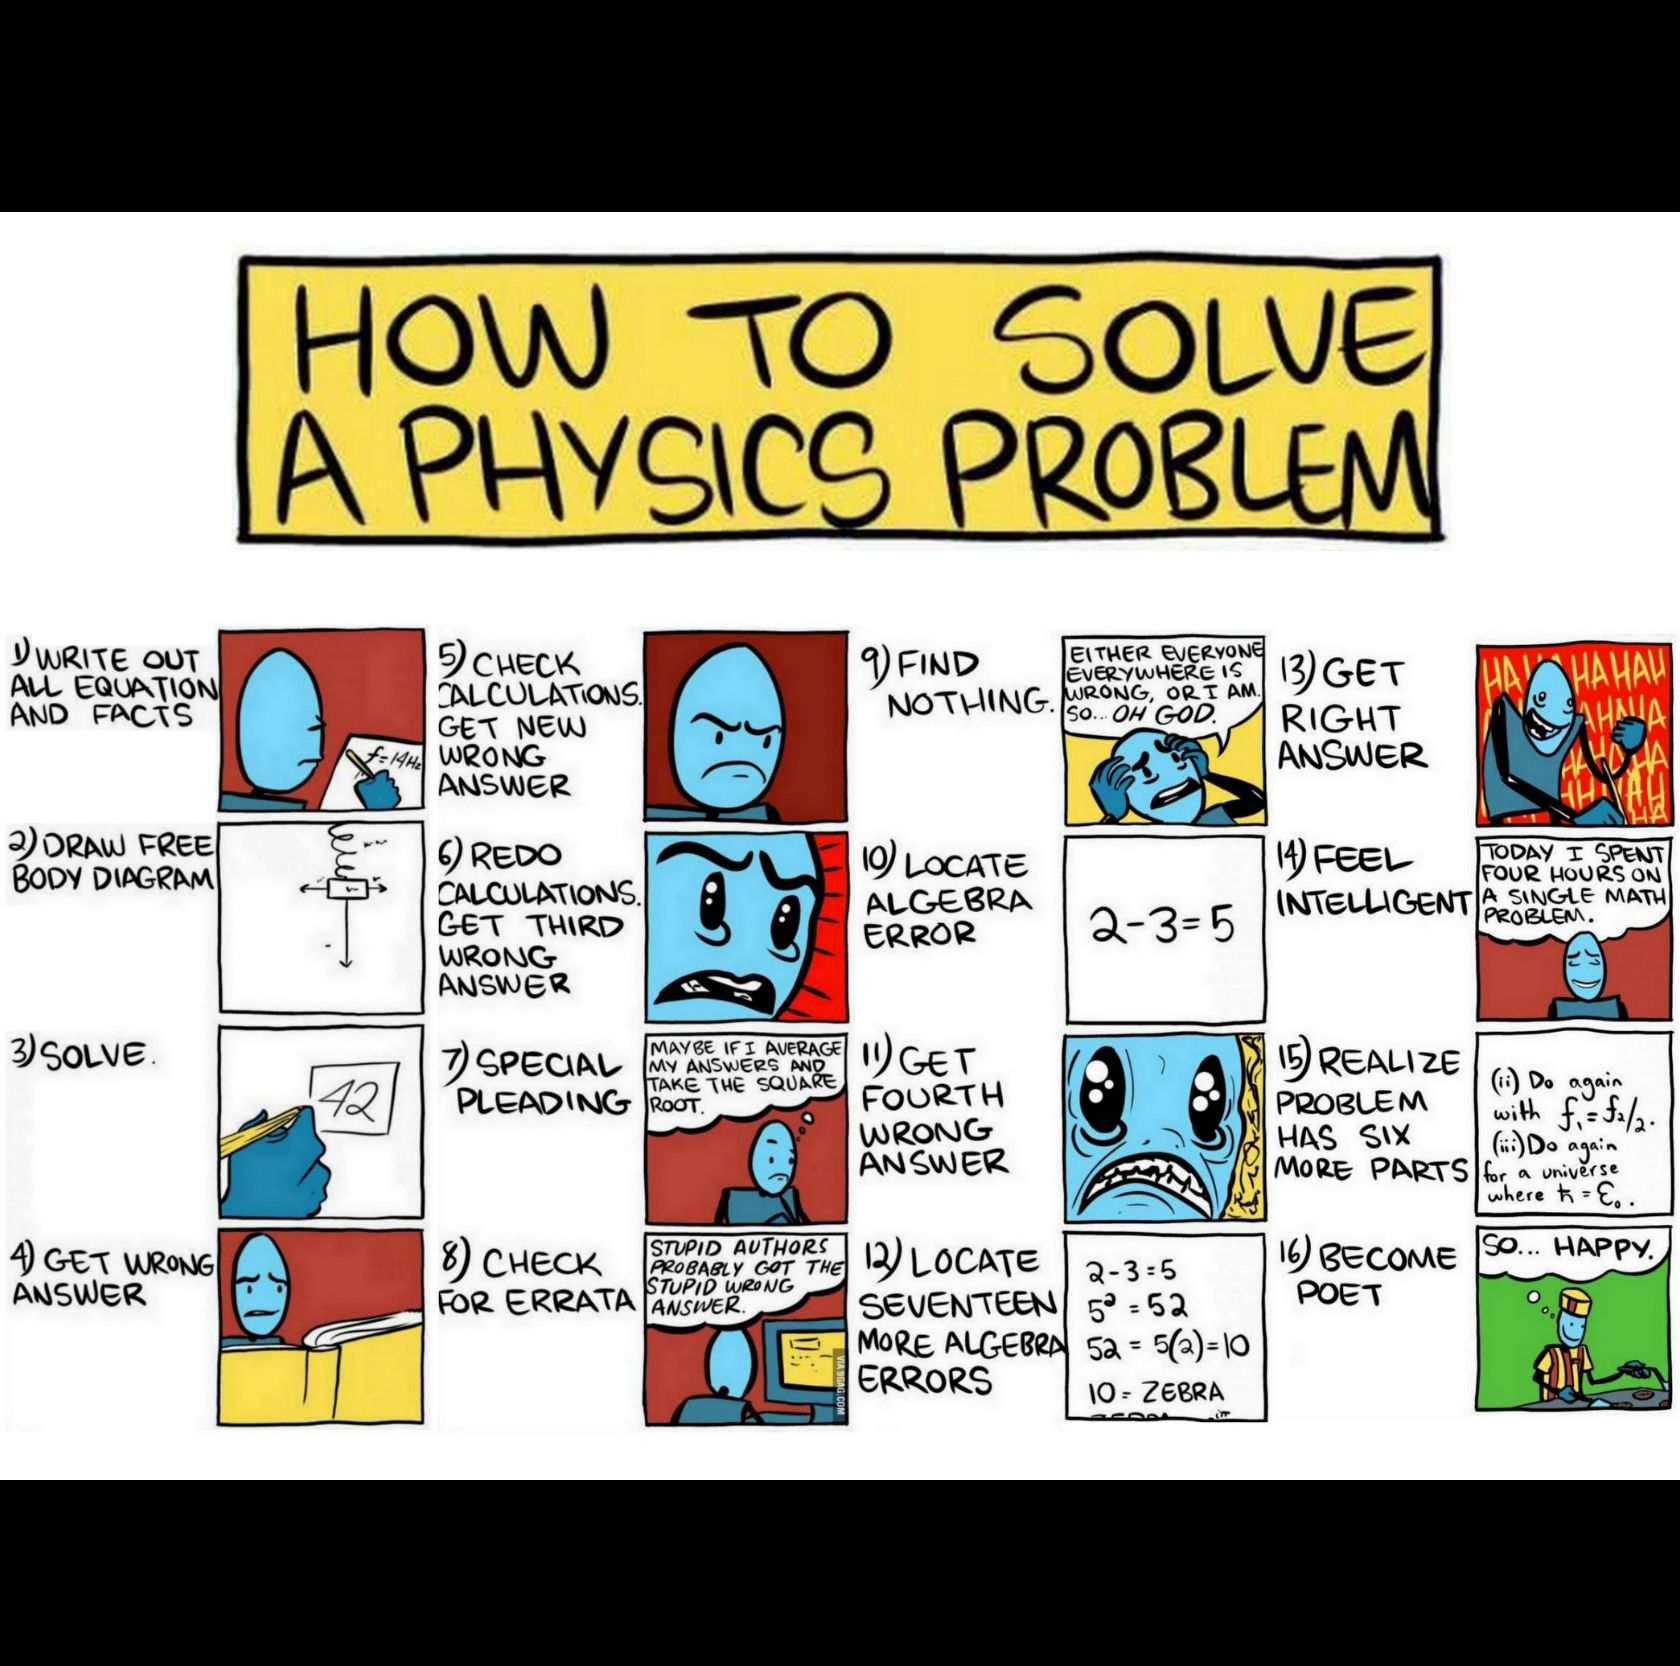 How To Solve Physics Problem Cupsoguepictures How To Solve Physics Problems